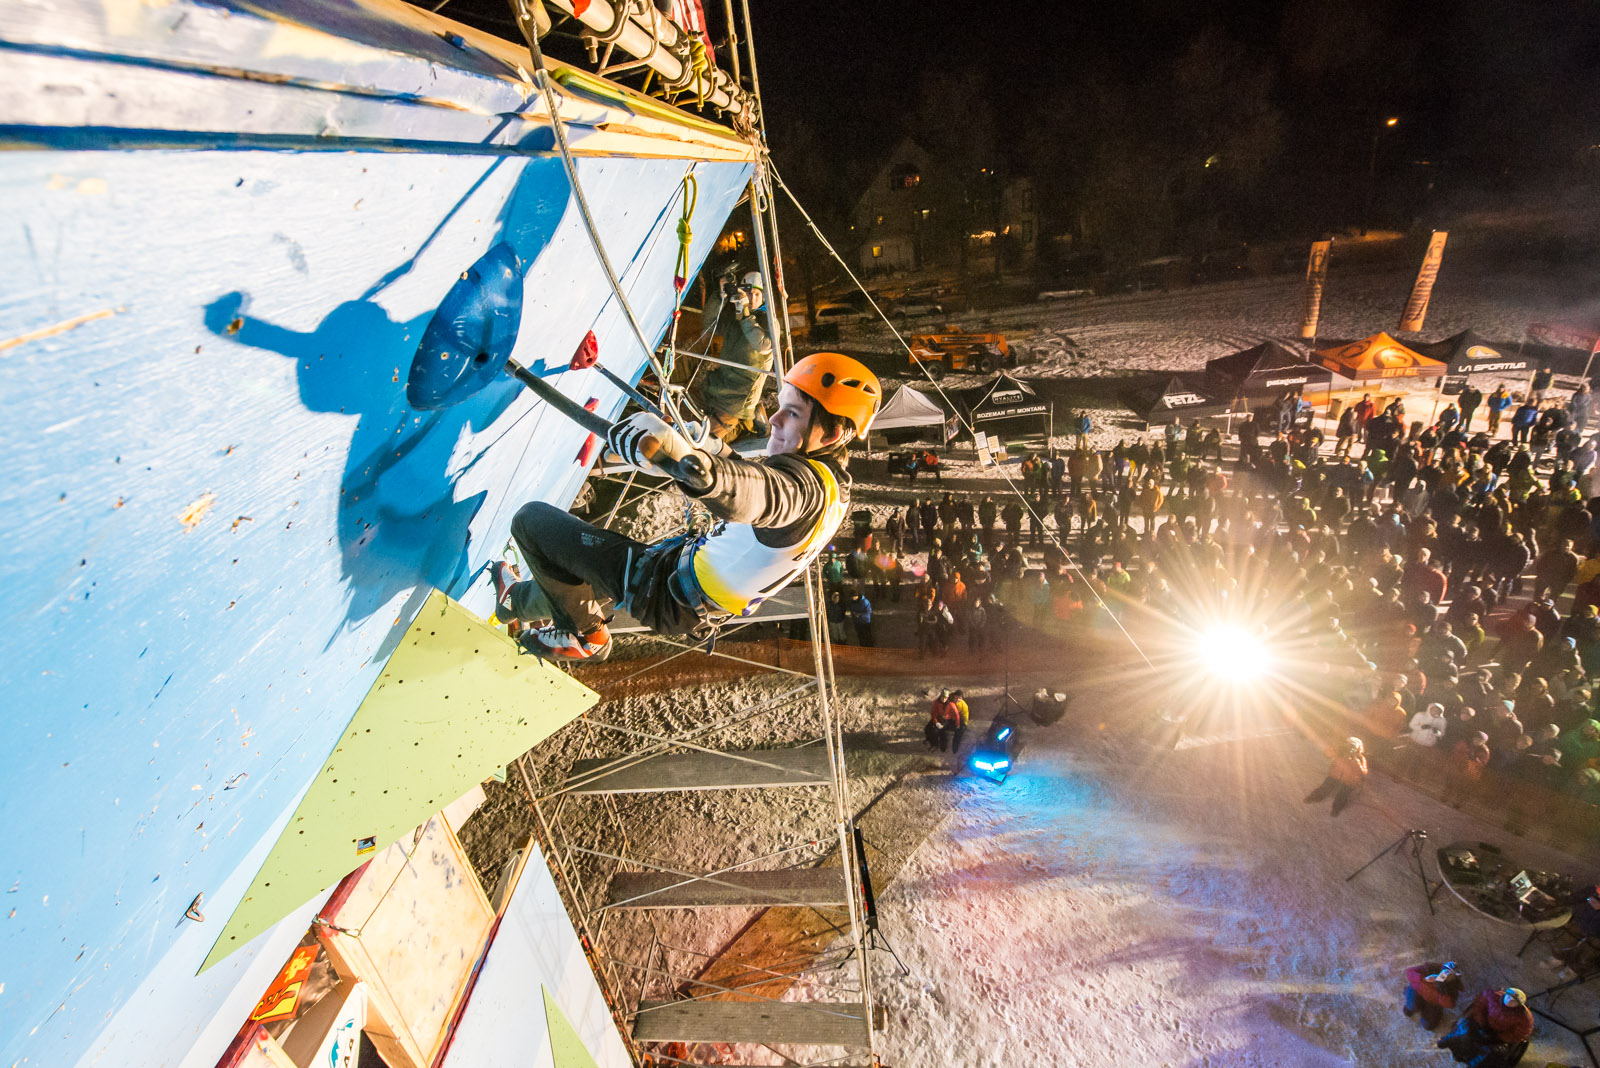 Enjoy a Different December Event with the Bozeman Ice Festival